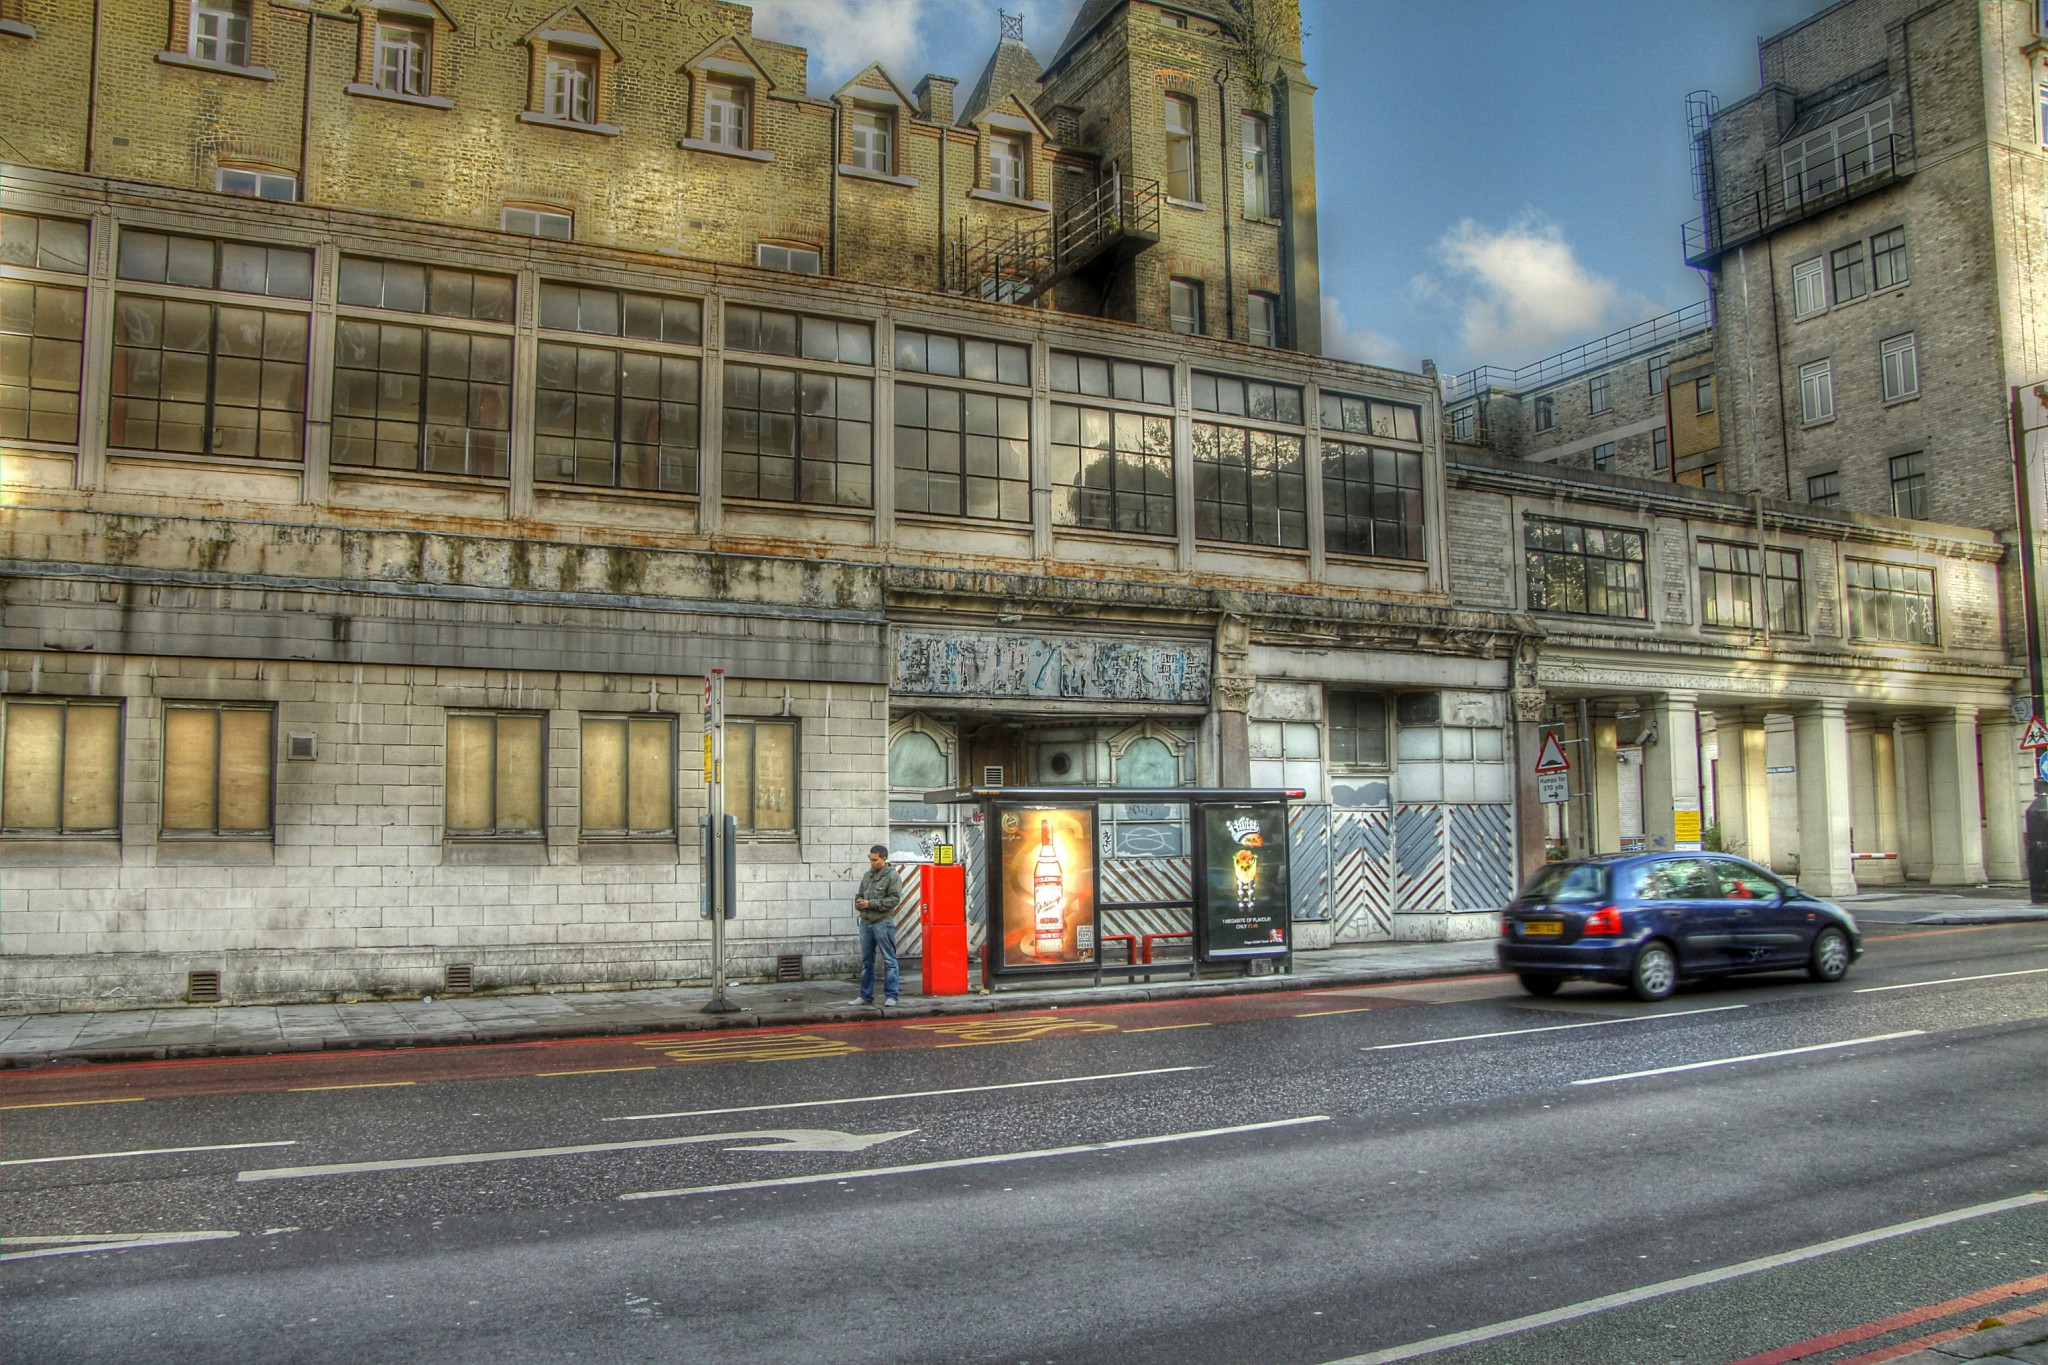 Old Abandoned building in Euston, London. HDR